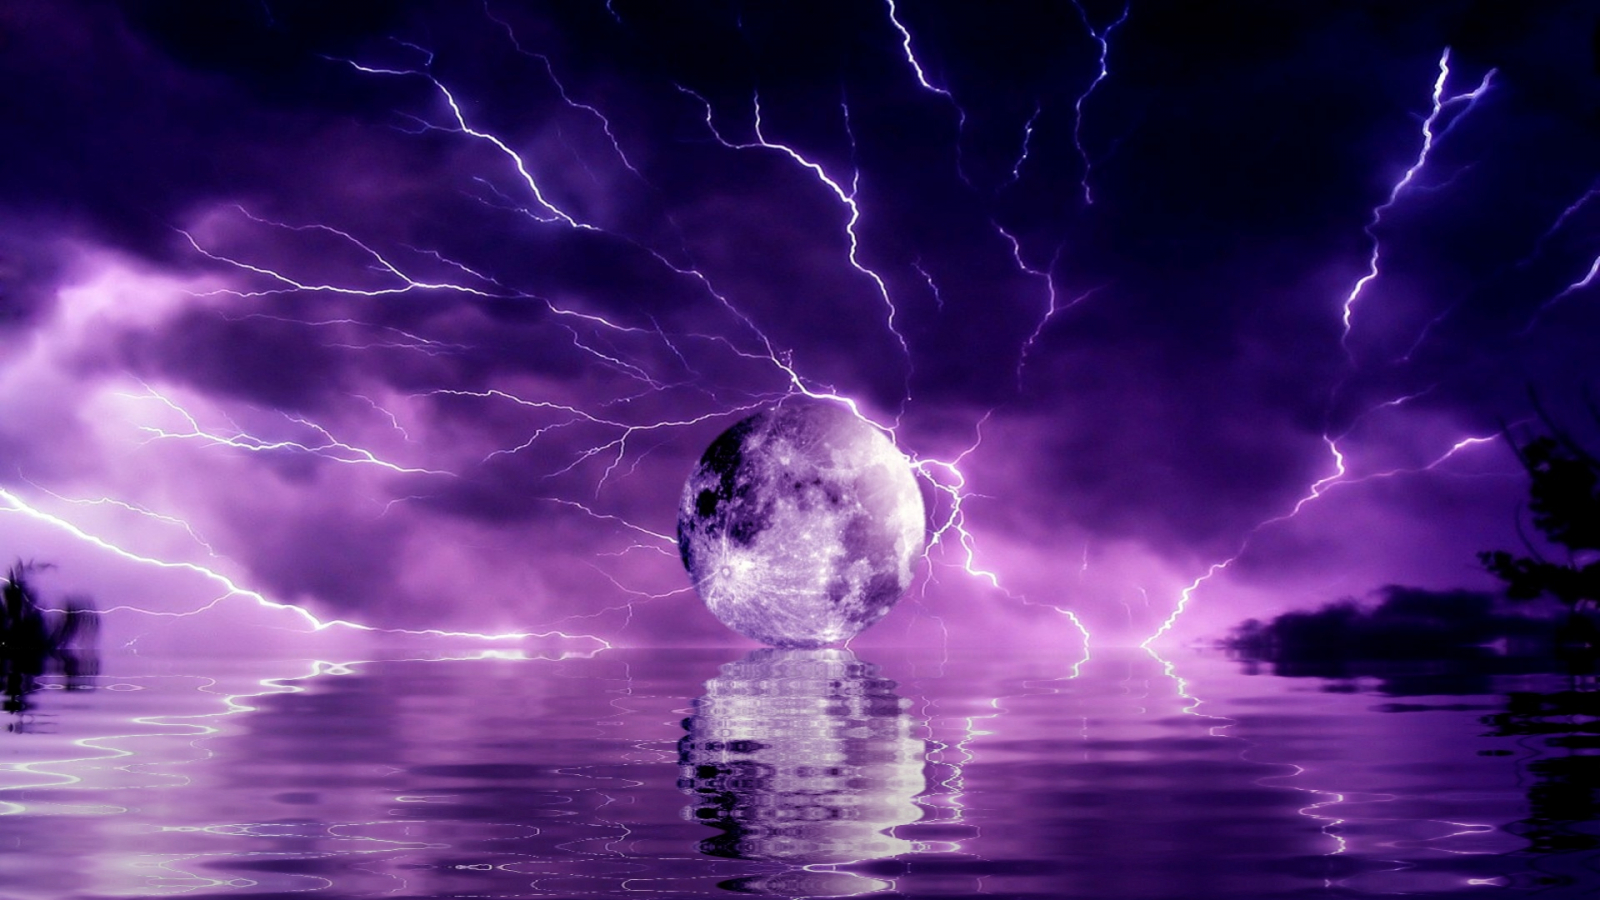 Free download Animated Storm Wallpaper photos Cool Natural Storm Animated Background [1920x1080